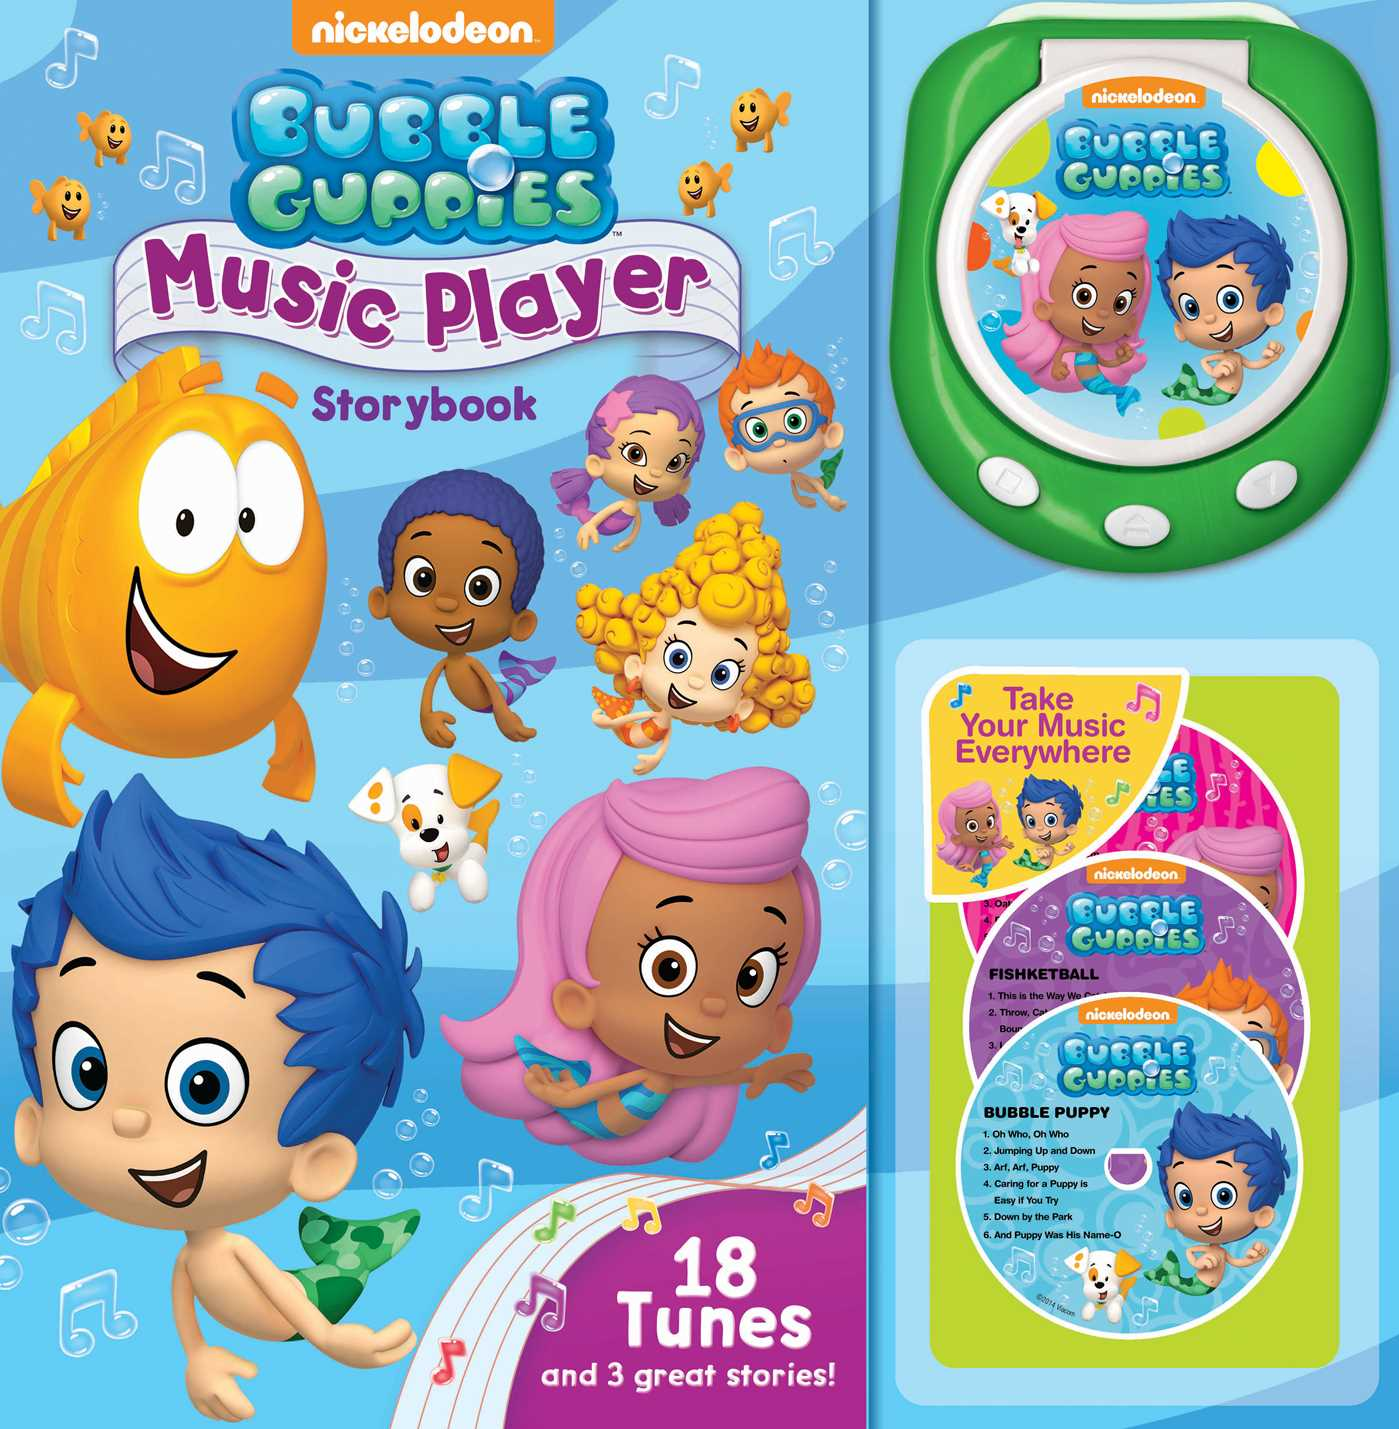 Bubble-guppies-music-player-storybook-9780794431976_hr